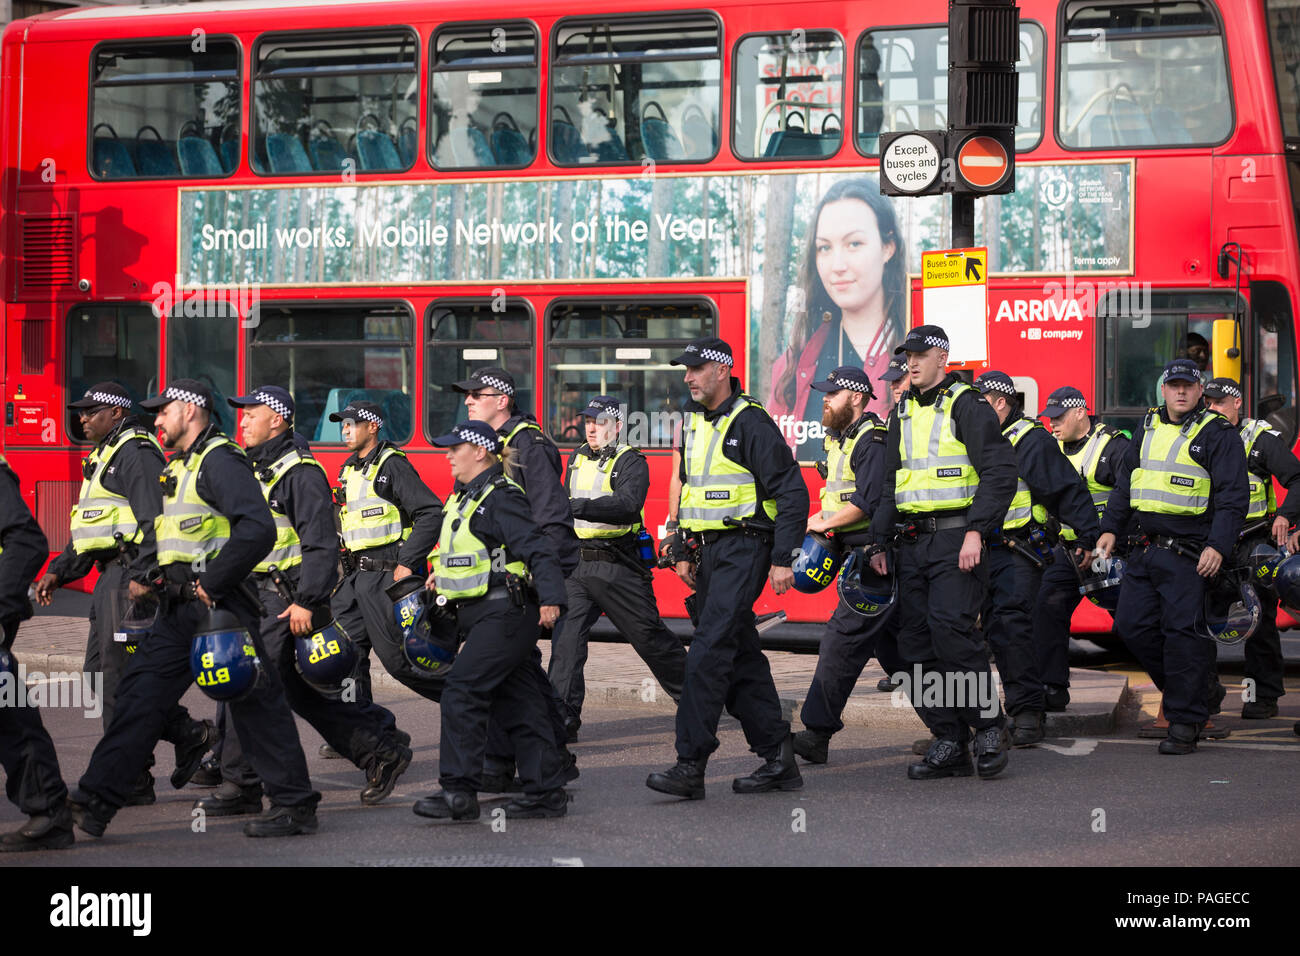 English Defence League supporters attend a rally in Whitehall where there were clashes with counter protesters from anti-fascist organisations, UK - Stock Image